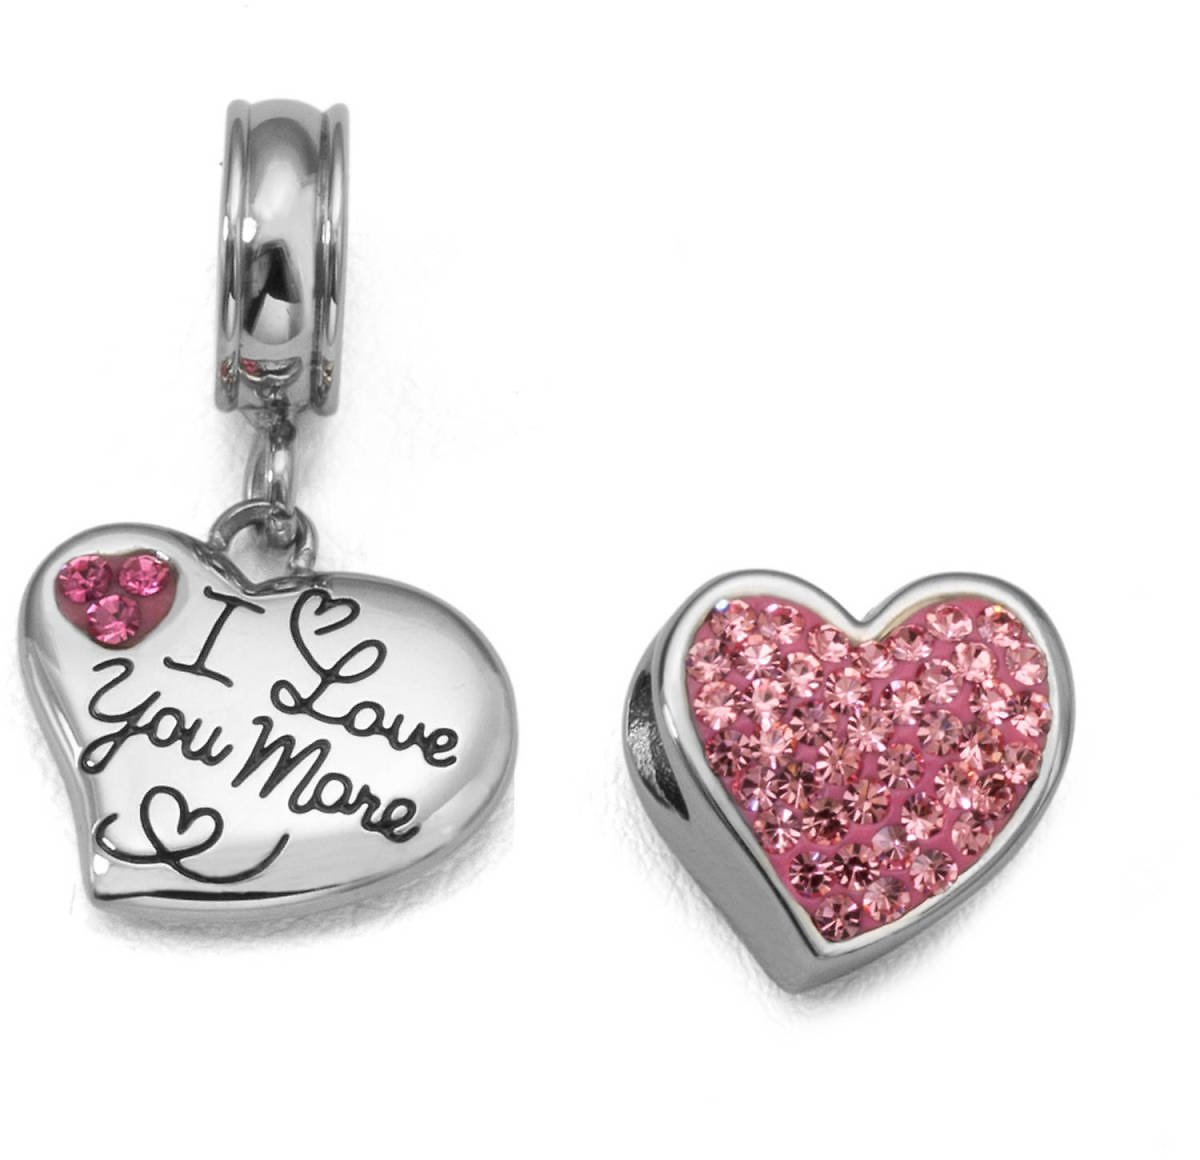 Connections From Hallmark - Pink Crystal Stainless Steel I Love You More Heart Charm Set